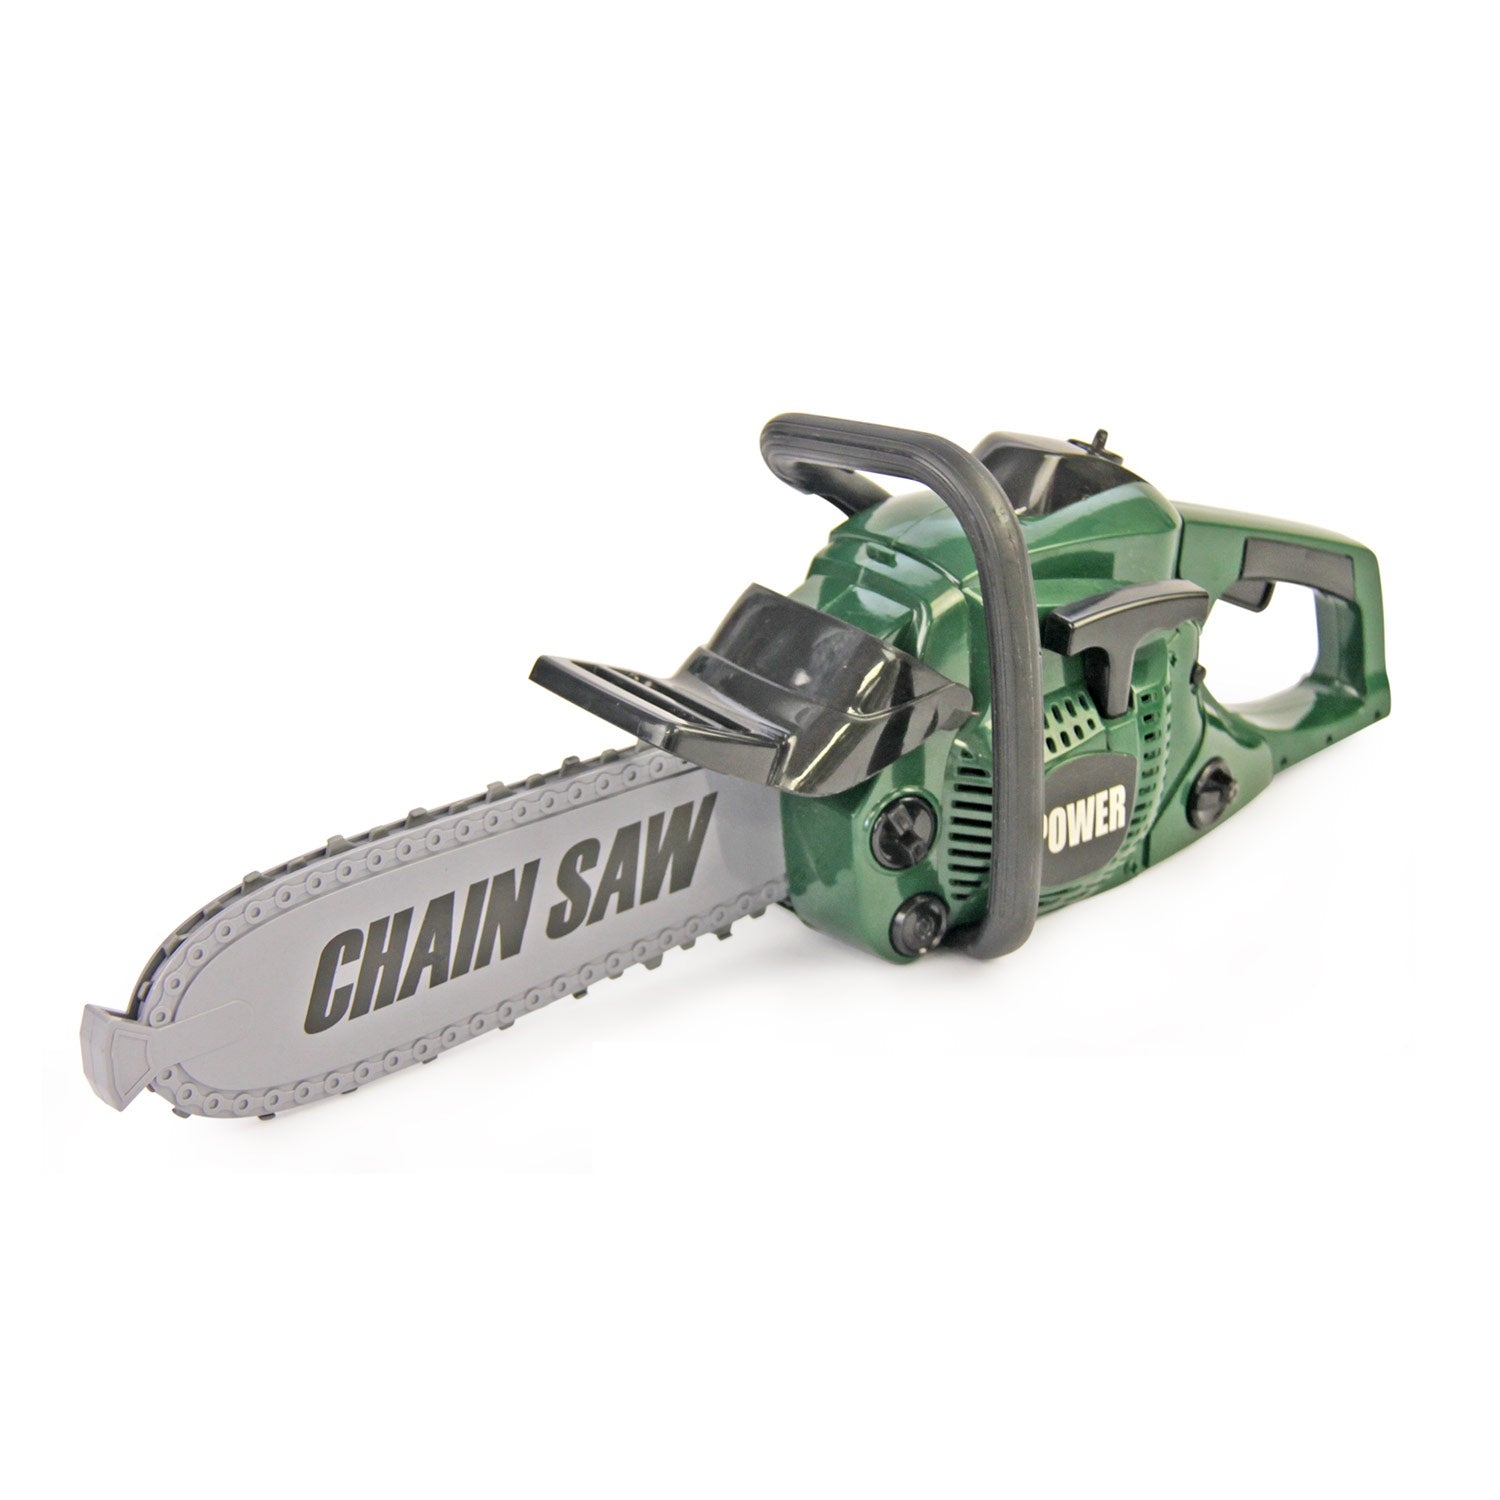 Jeronimo - Power Tools - Toy Chainsaw